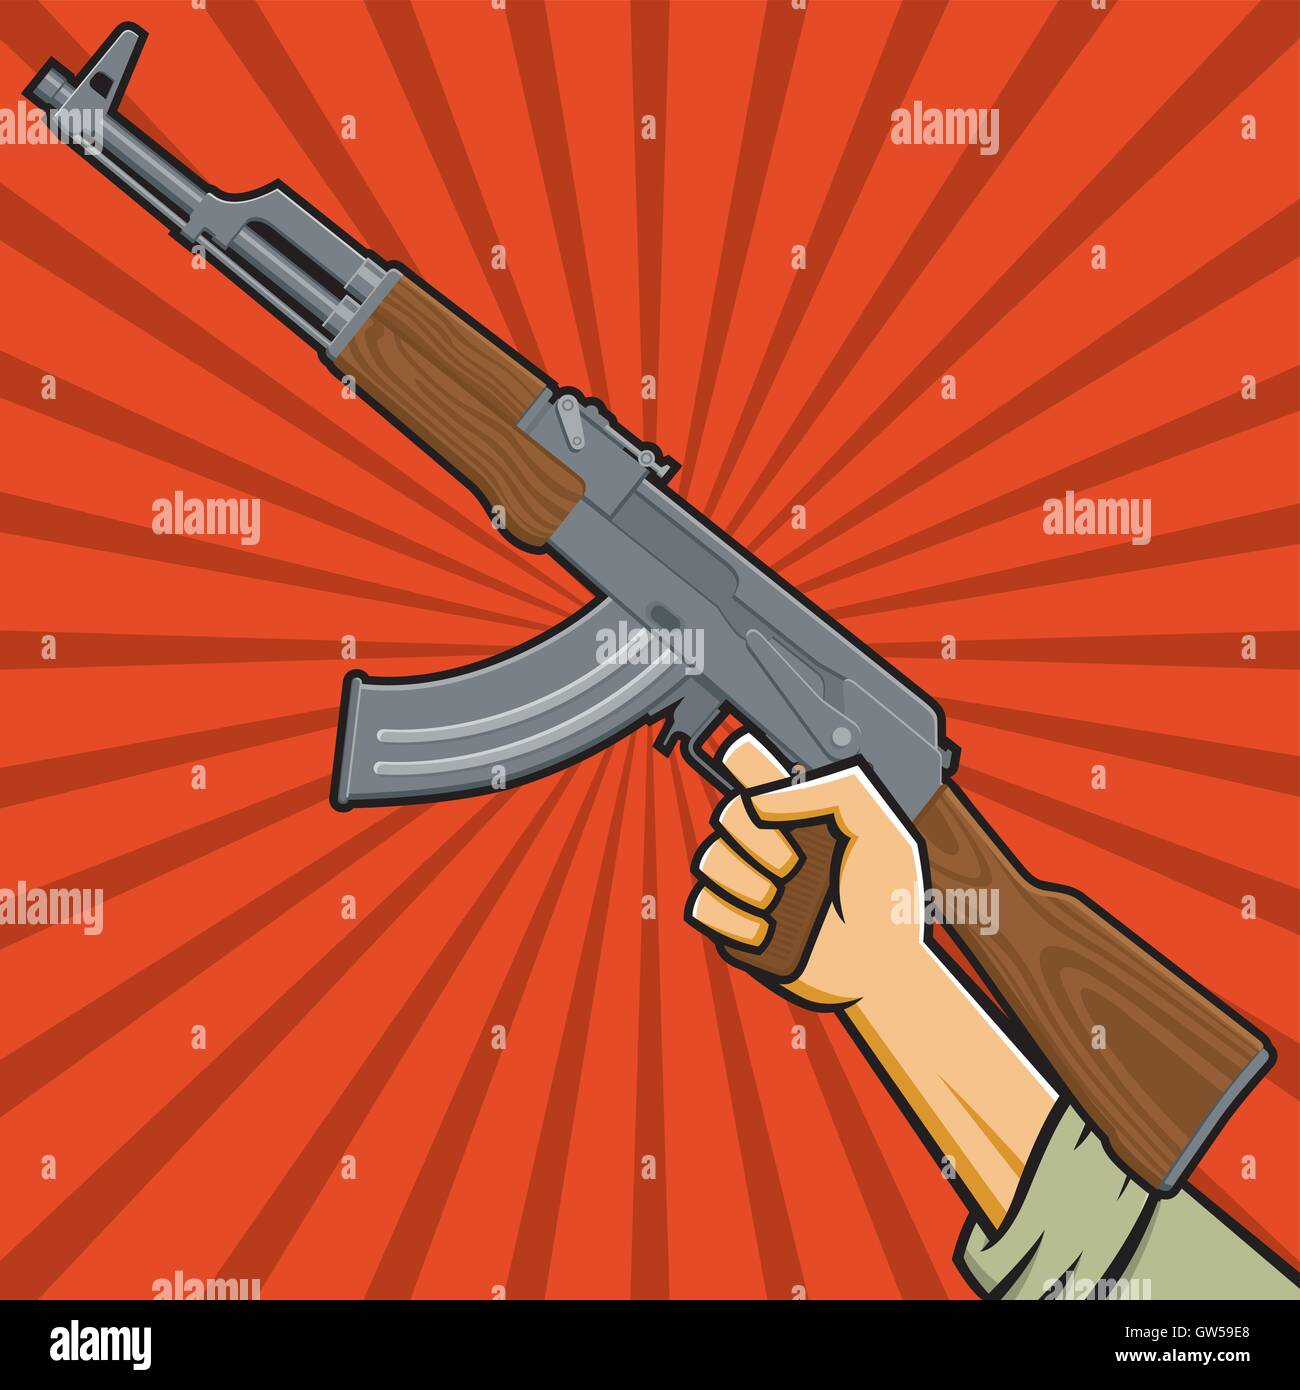 Raised fist holding AK47 sub-machine gun. Hand holds assault rifle over red radial background. In the style of Russian - Stock Vector